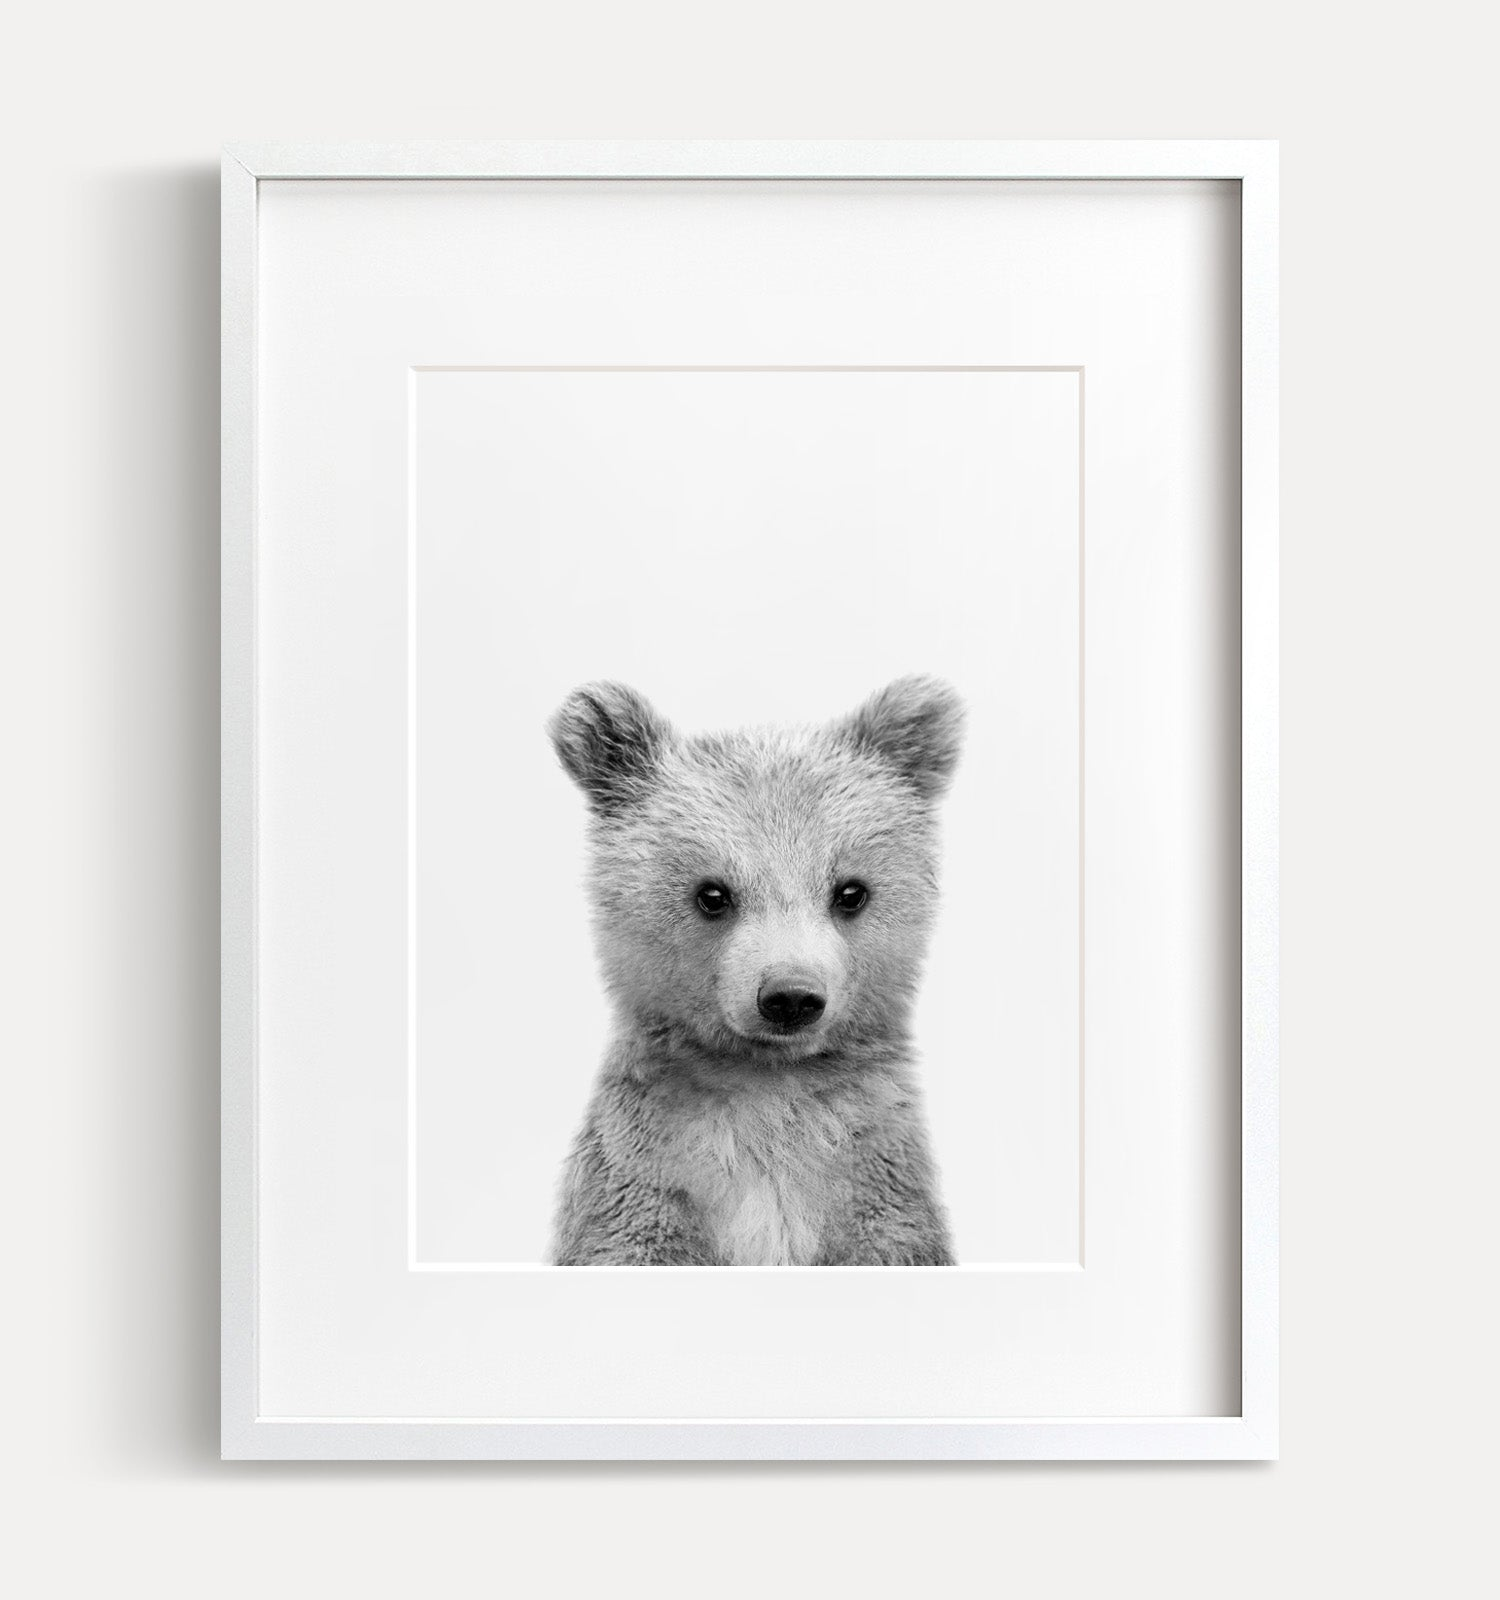 Baby Grizzly Bear Printable Art - Black and White